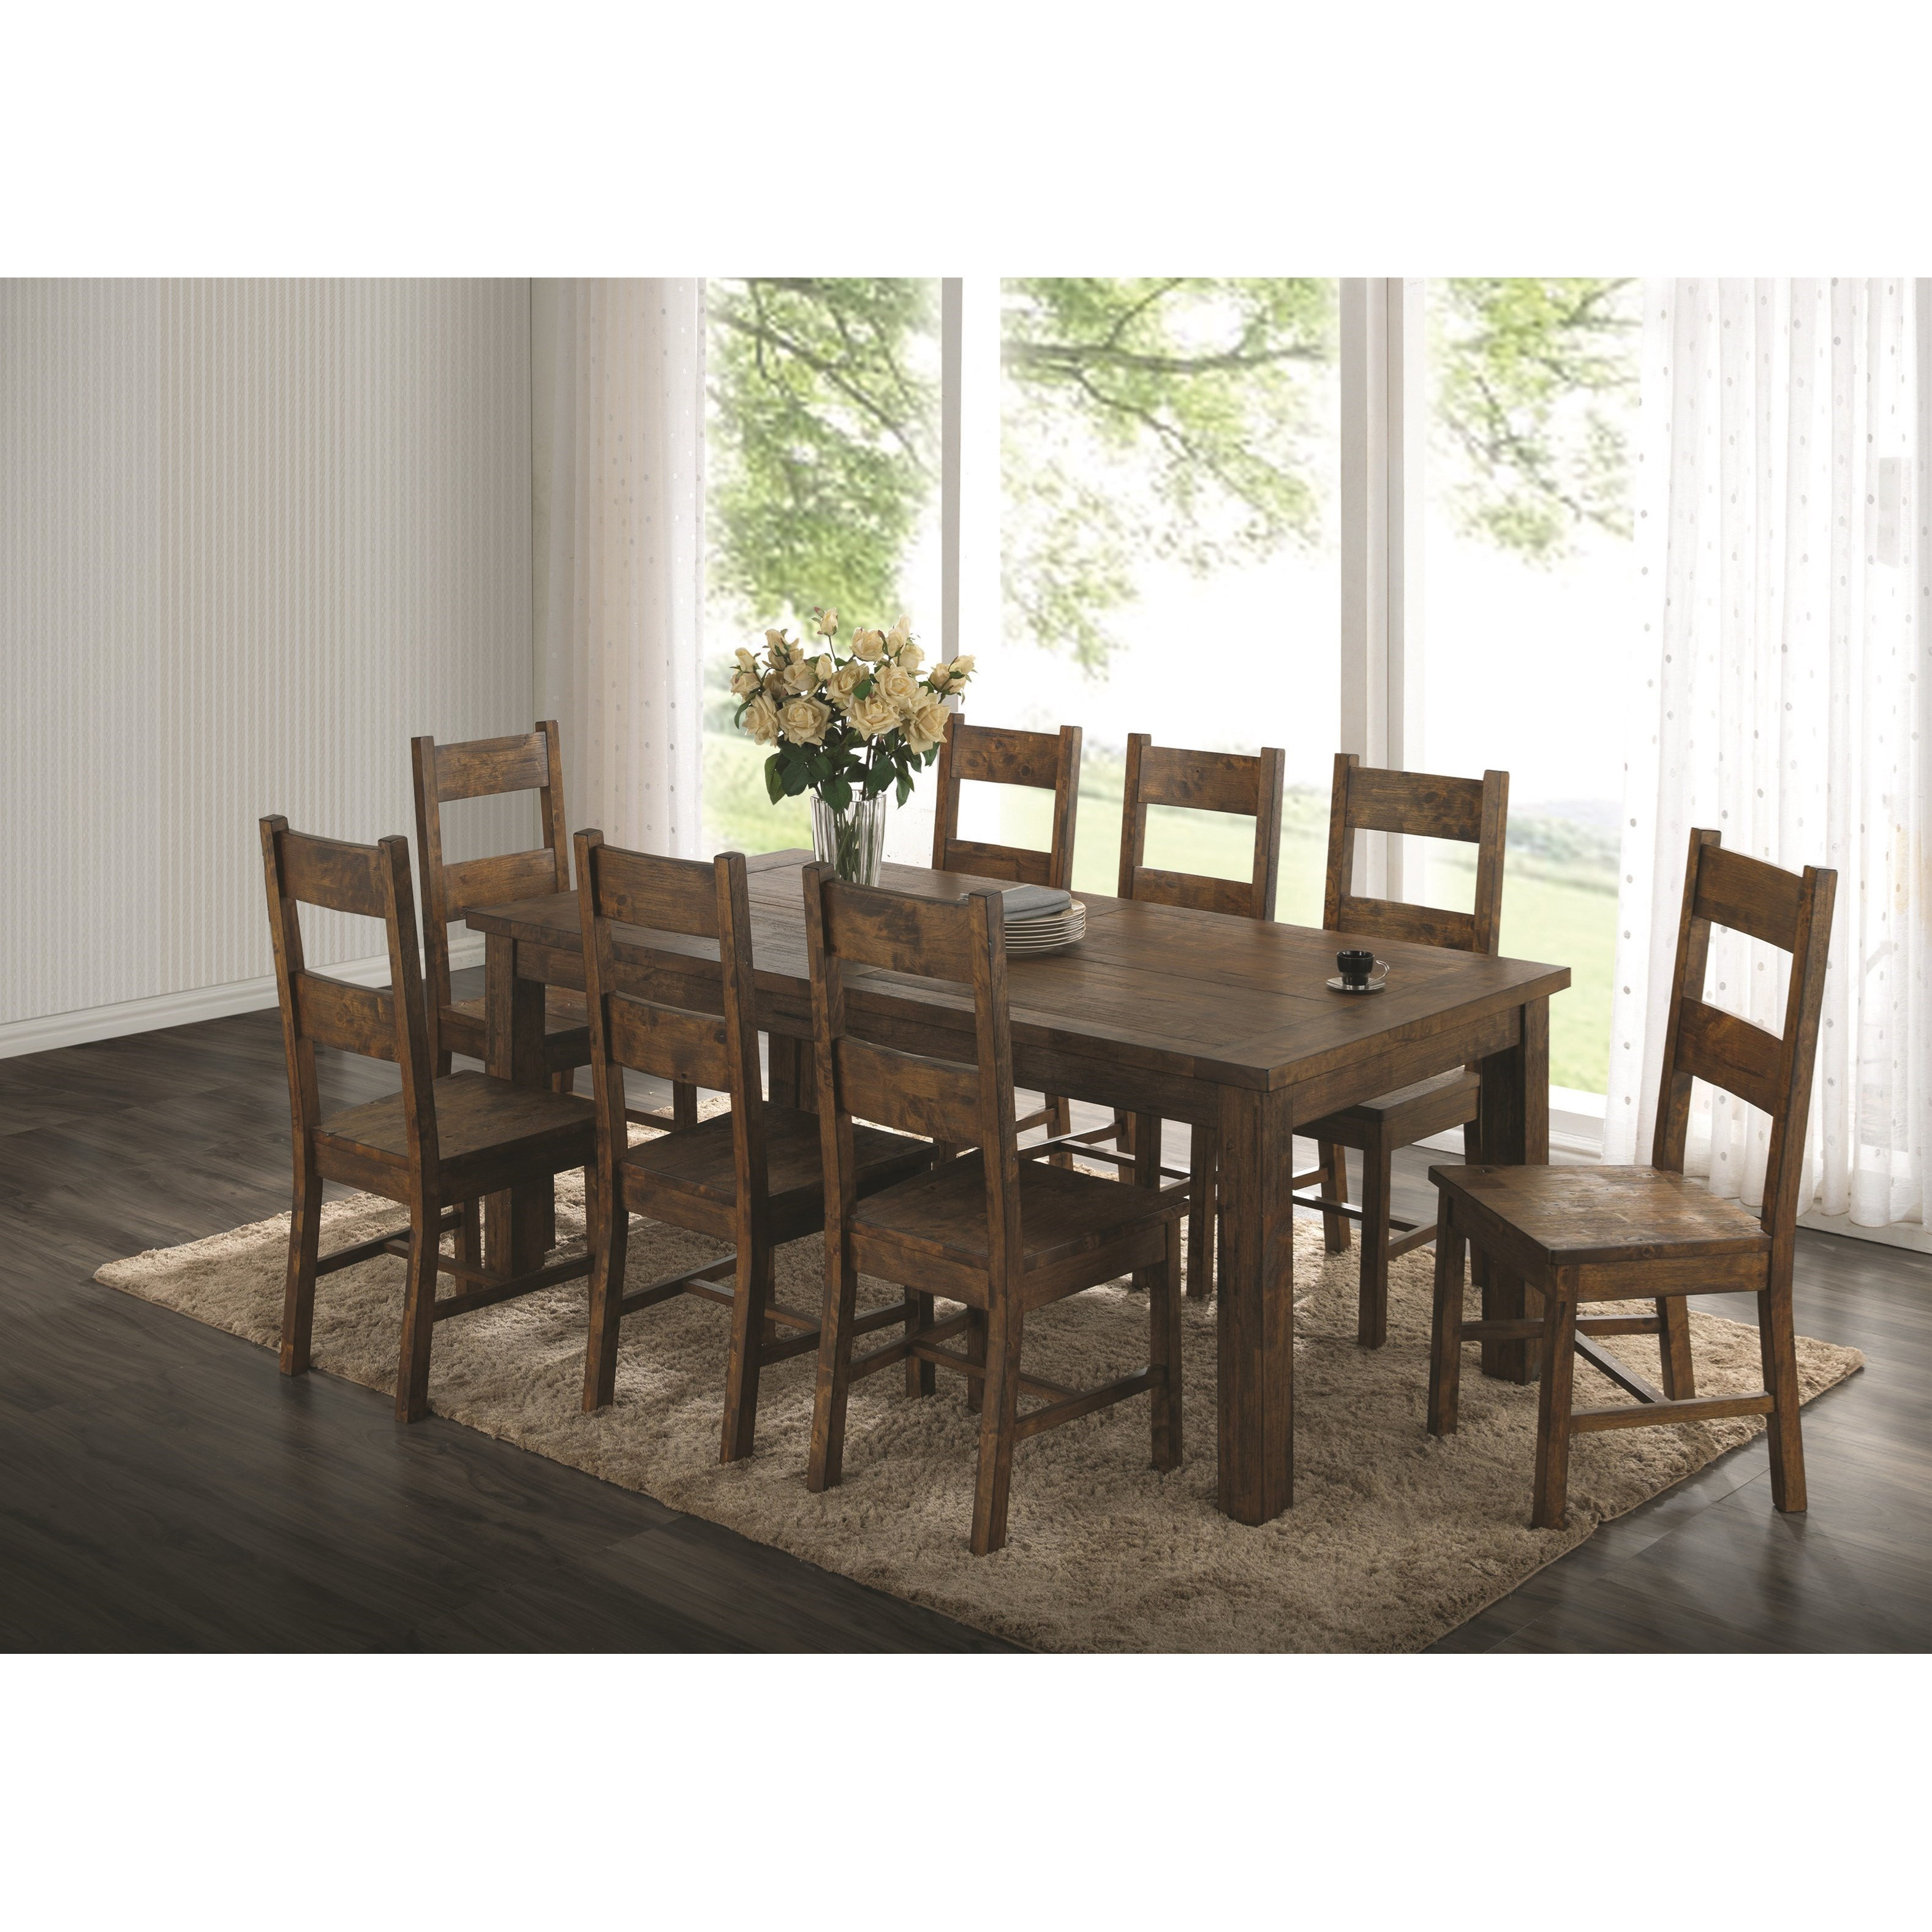 Coaster Coleman Rustic Table And Chair Set